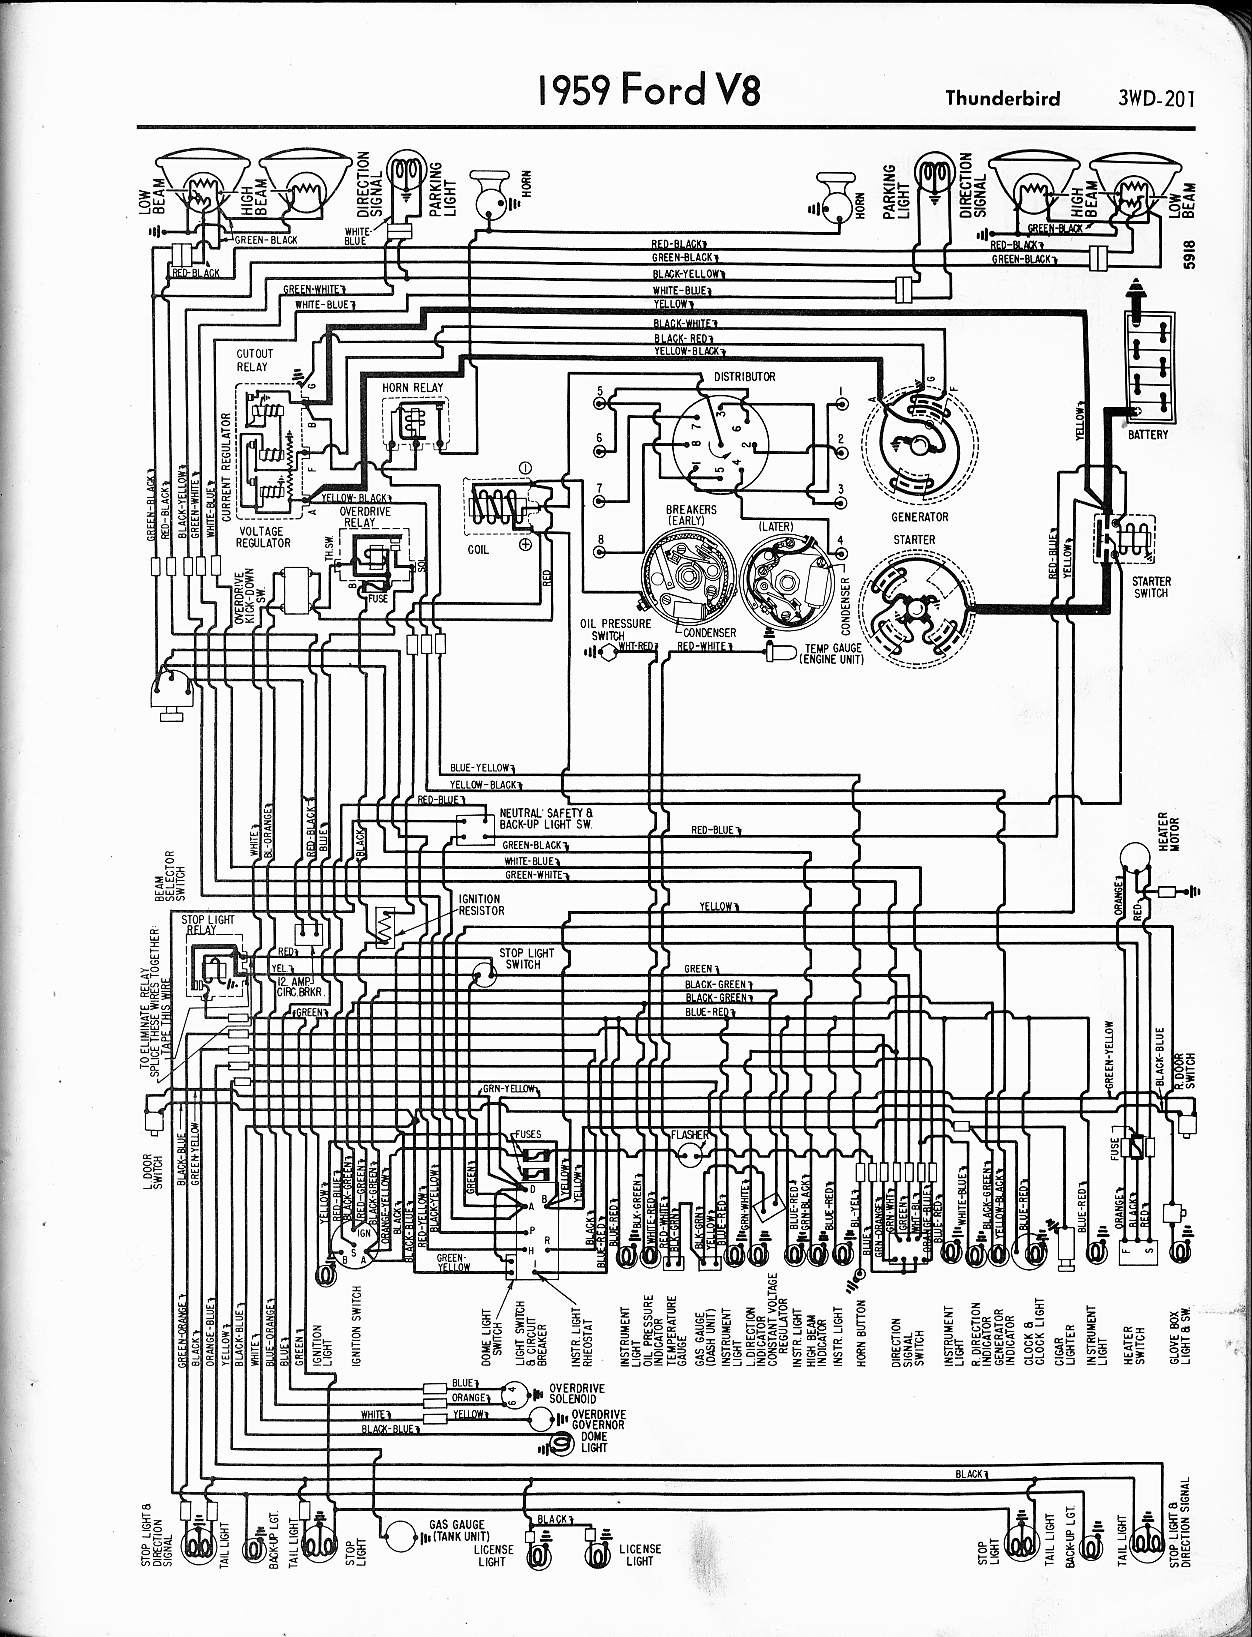 Peachy 57 65 Ford Wiring Diagrams Wiring Cloud Grayisramohammedshrineorg